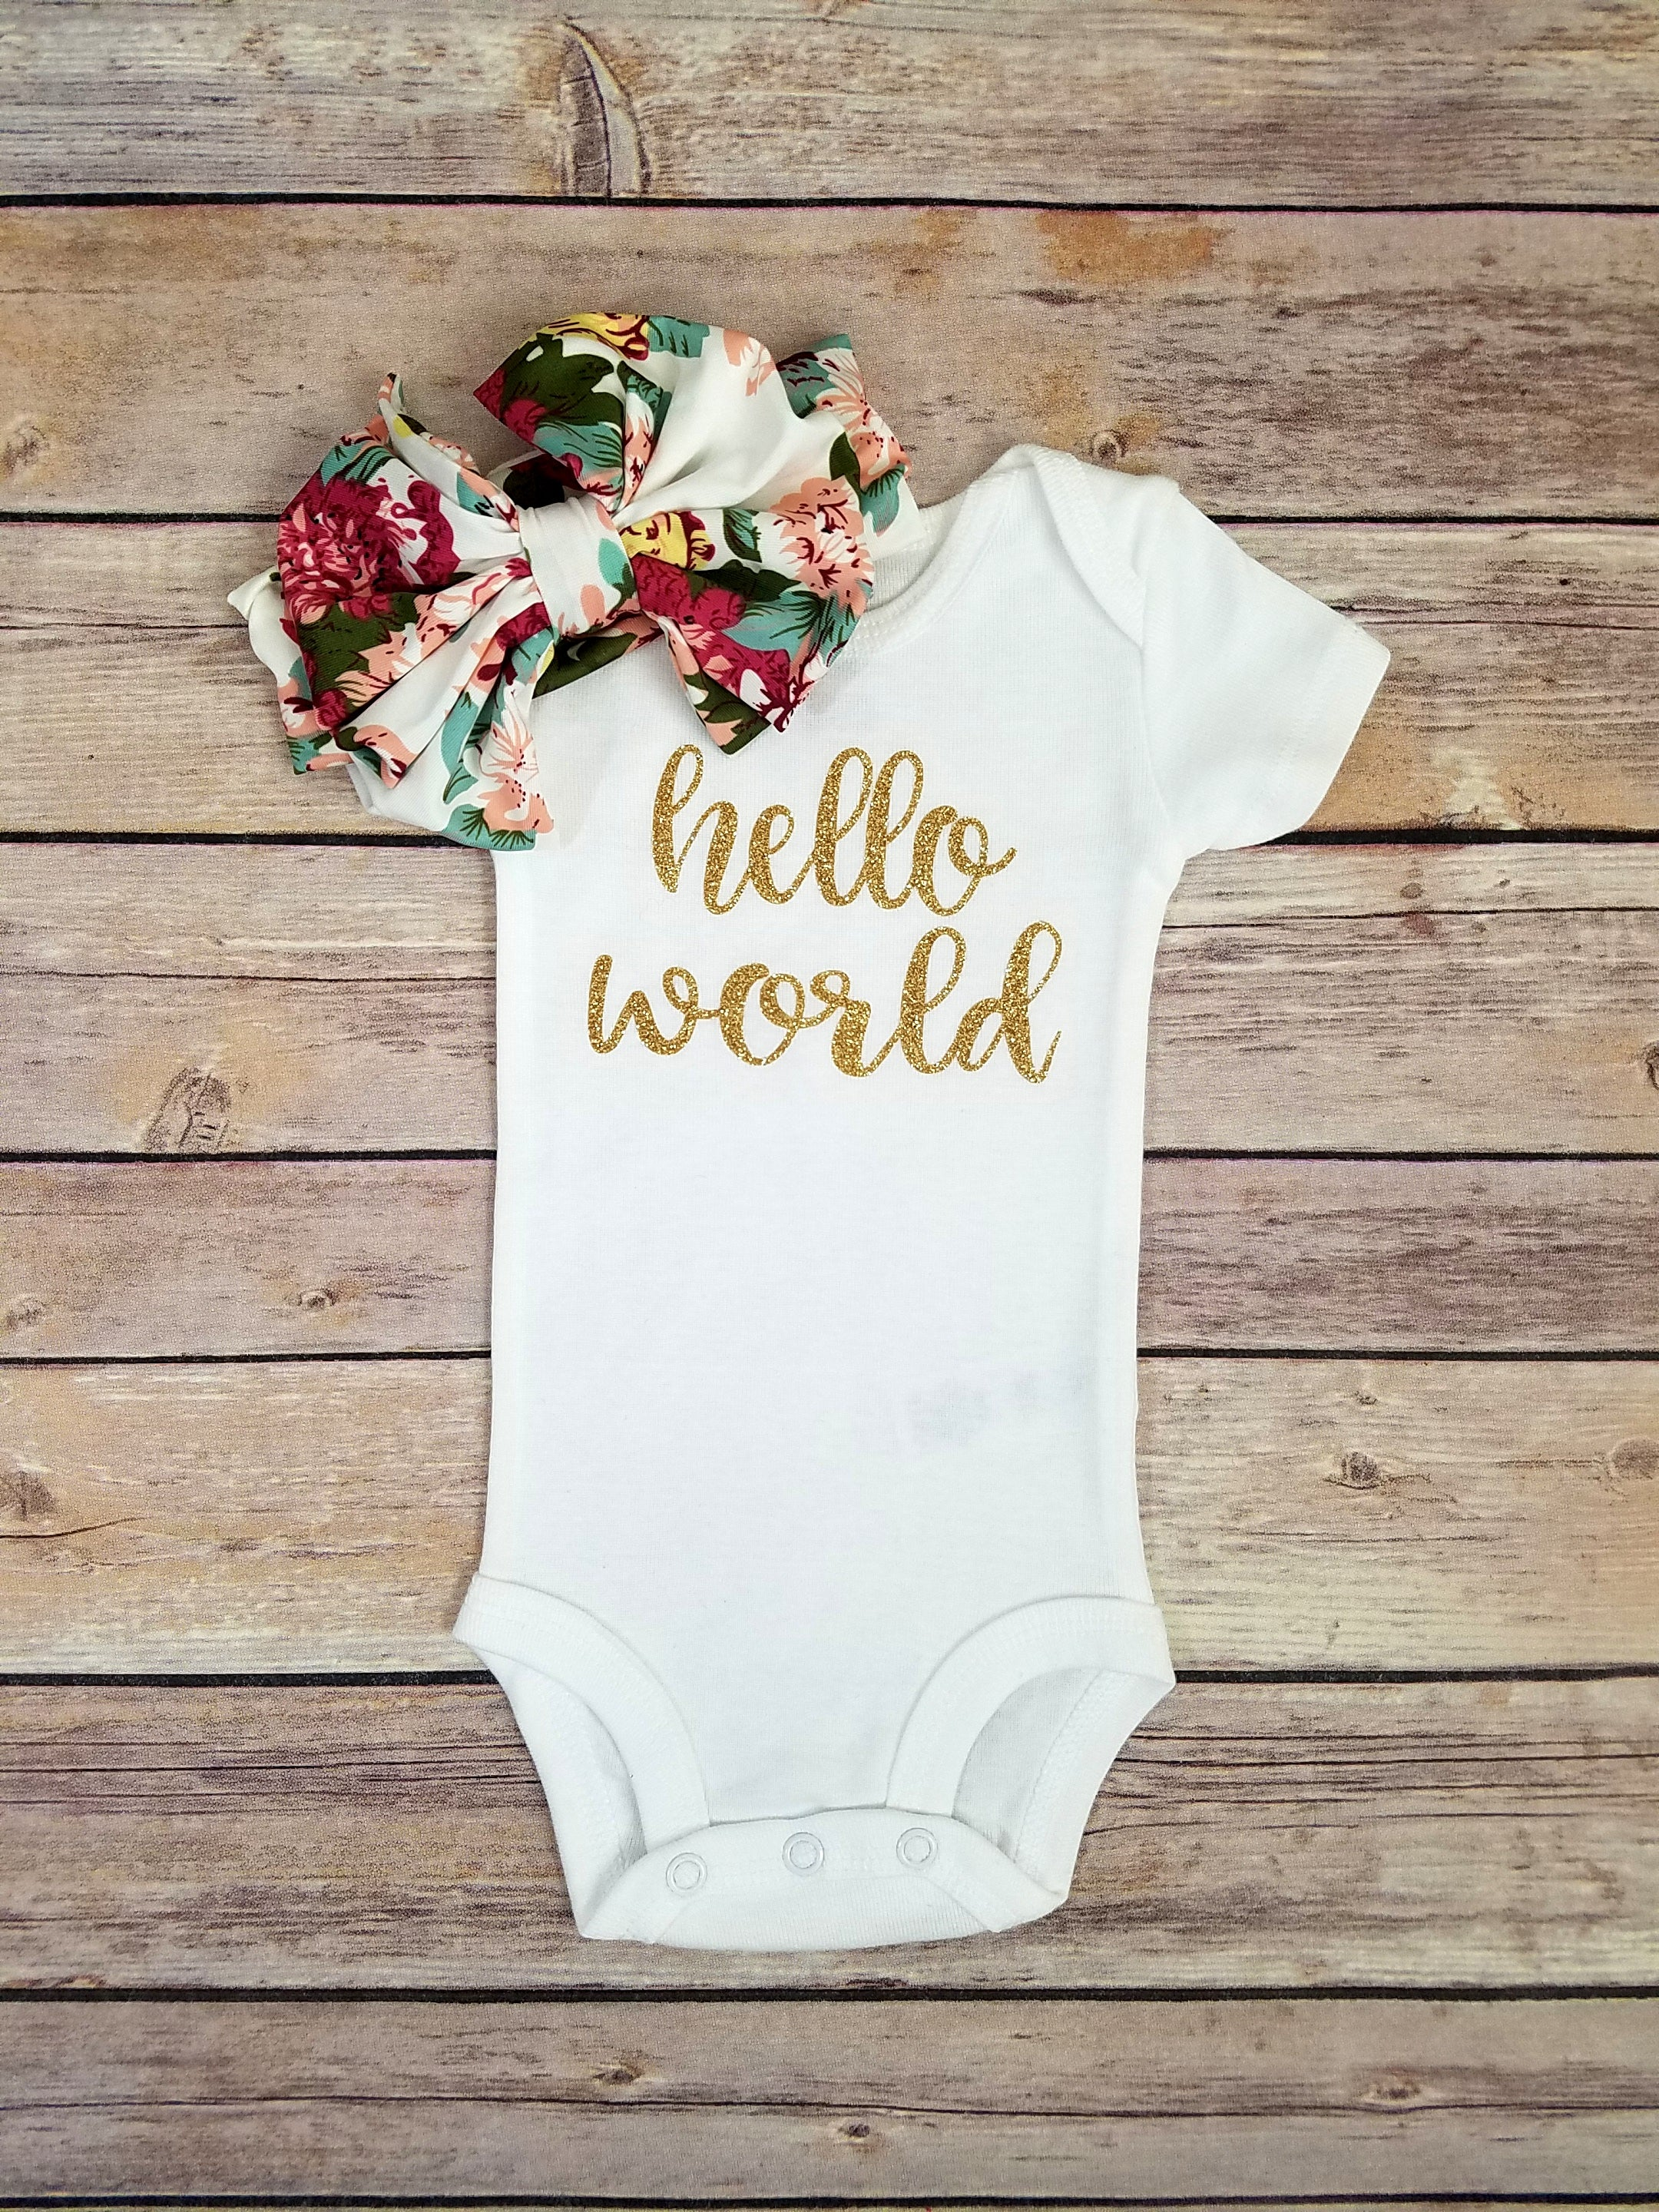 Charlie hello world onesie and floral headband coming home outfit girl adassa rose